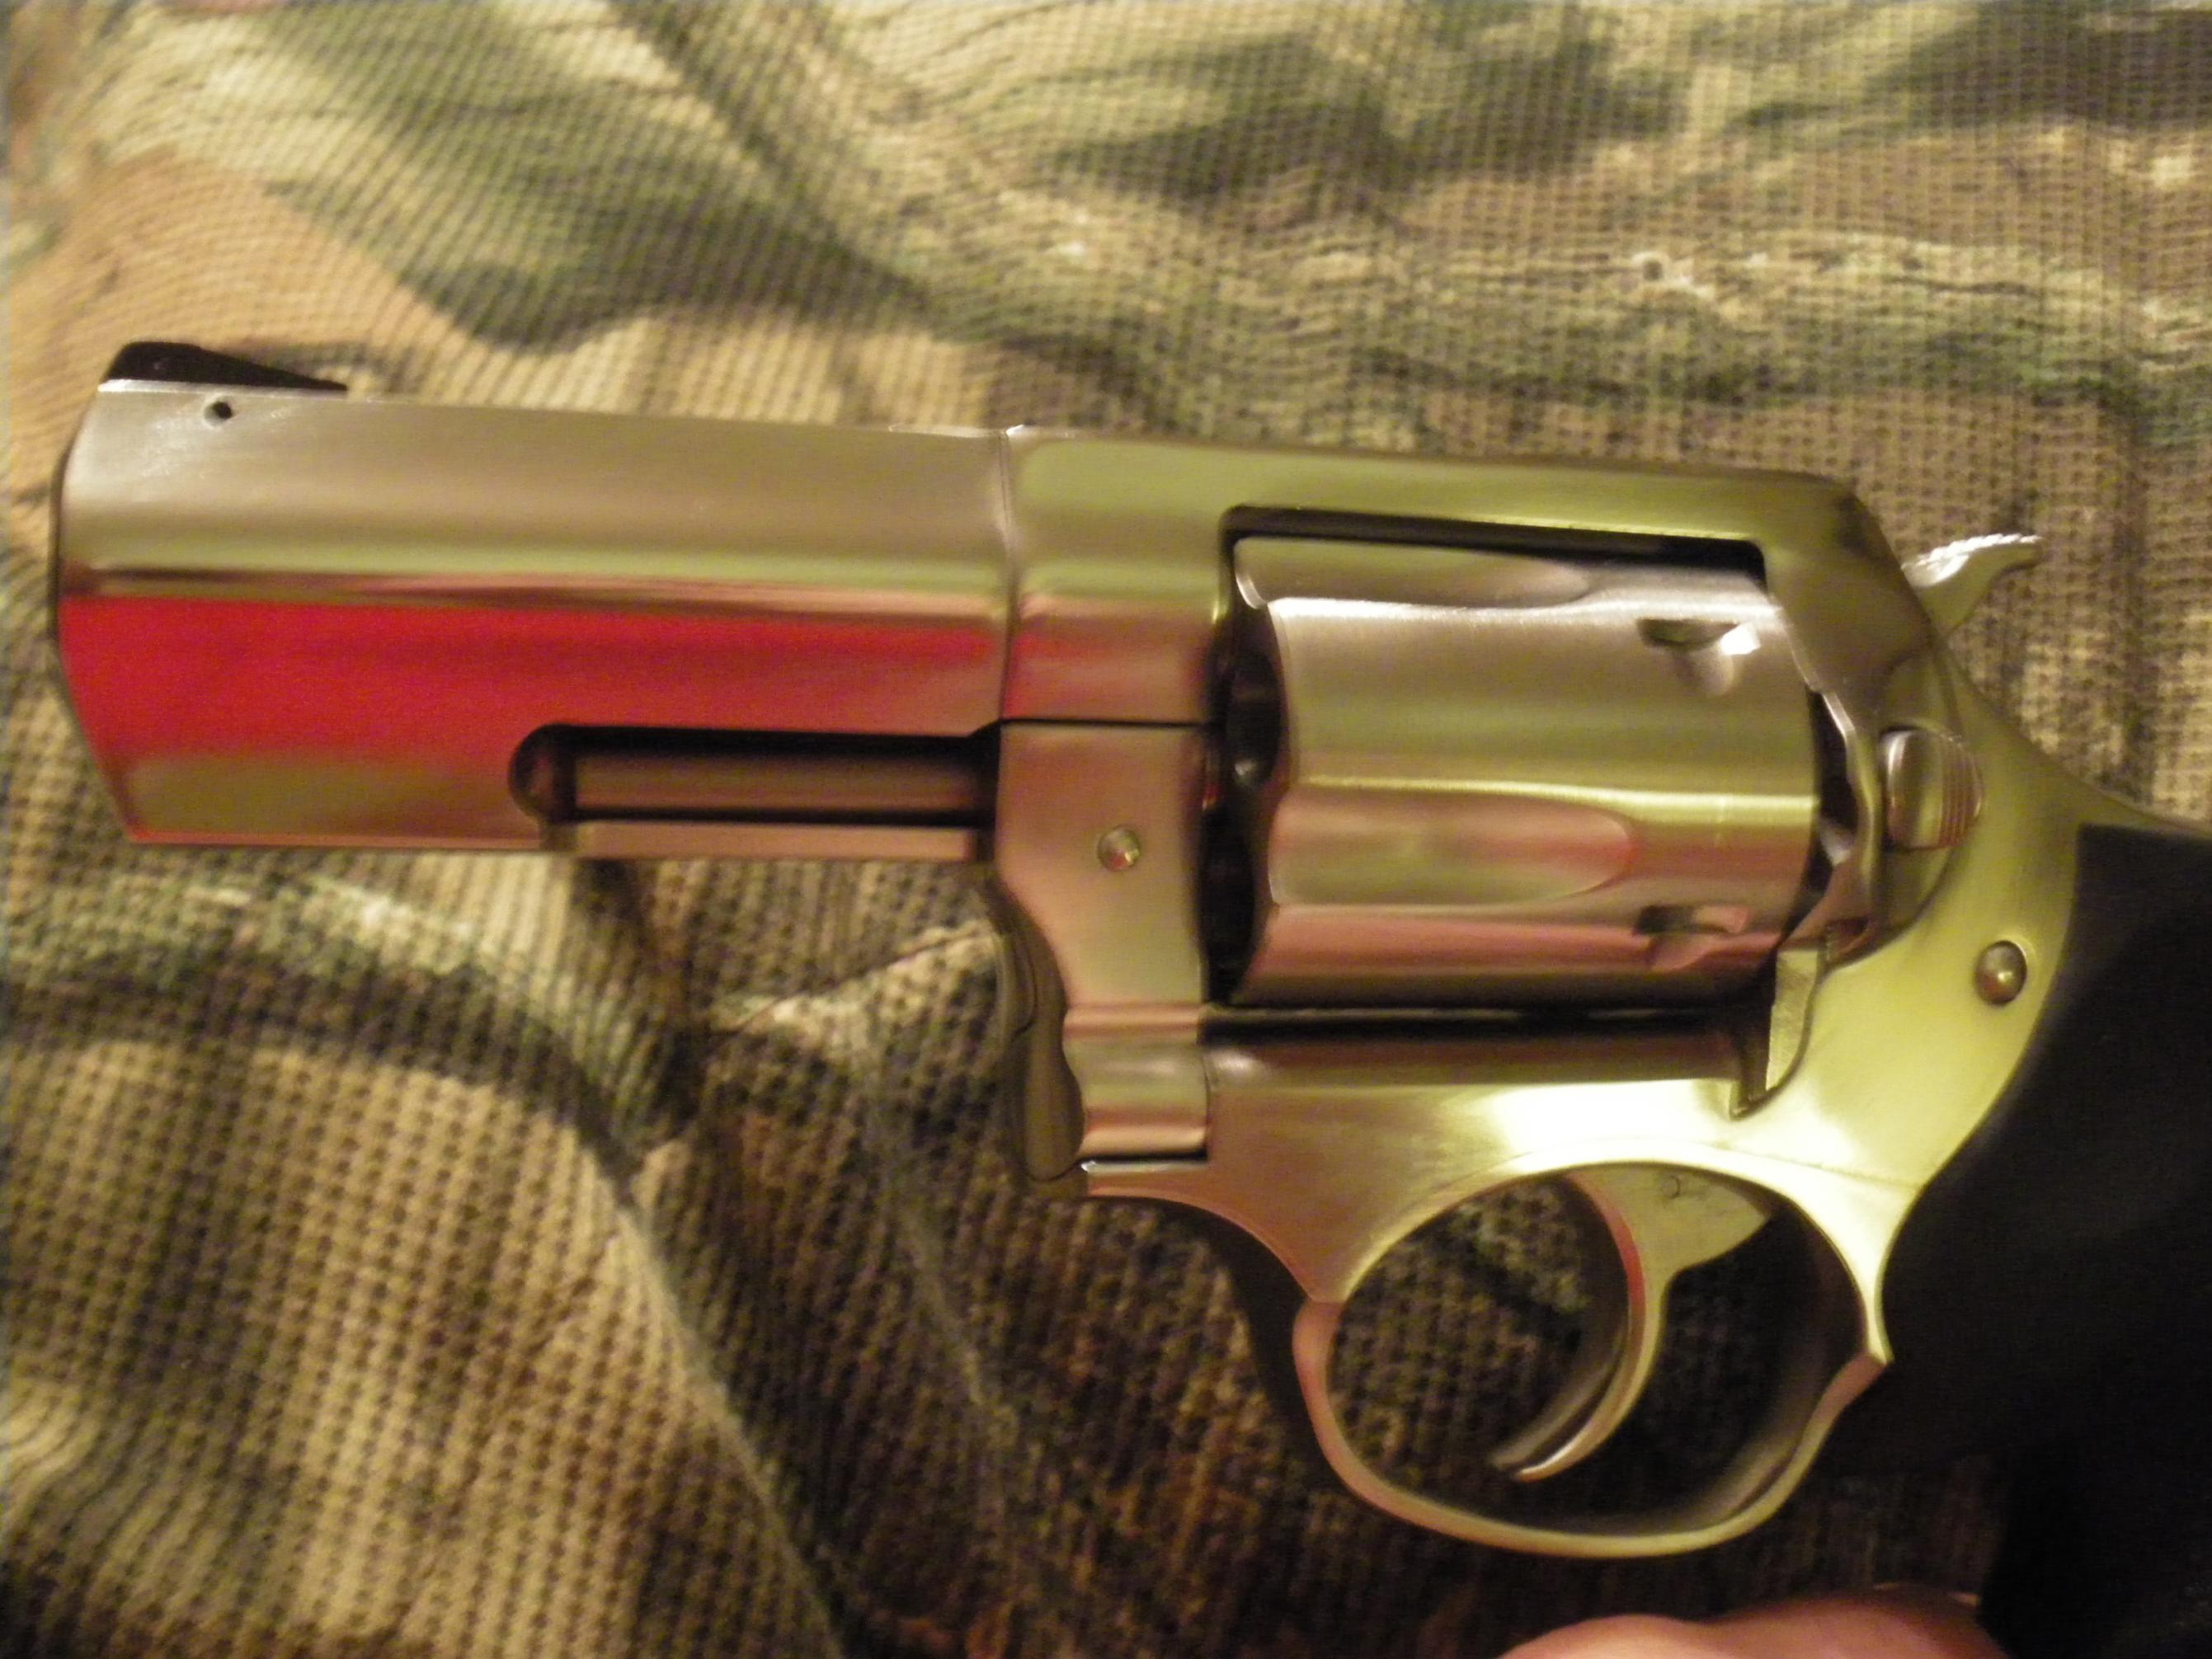 Wheelgun-itis Strikes Again.....New Ruger and a New Carry Blade-2012-10-16-09.42.17.jpg